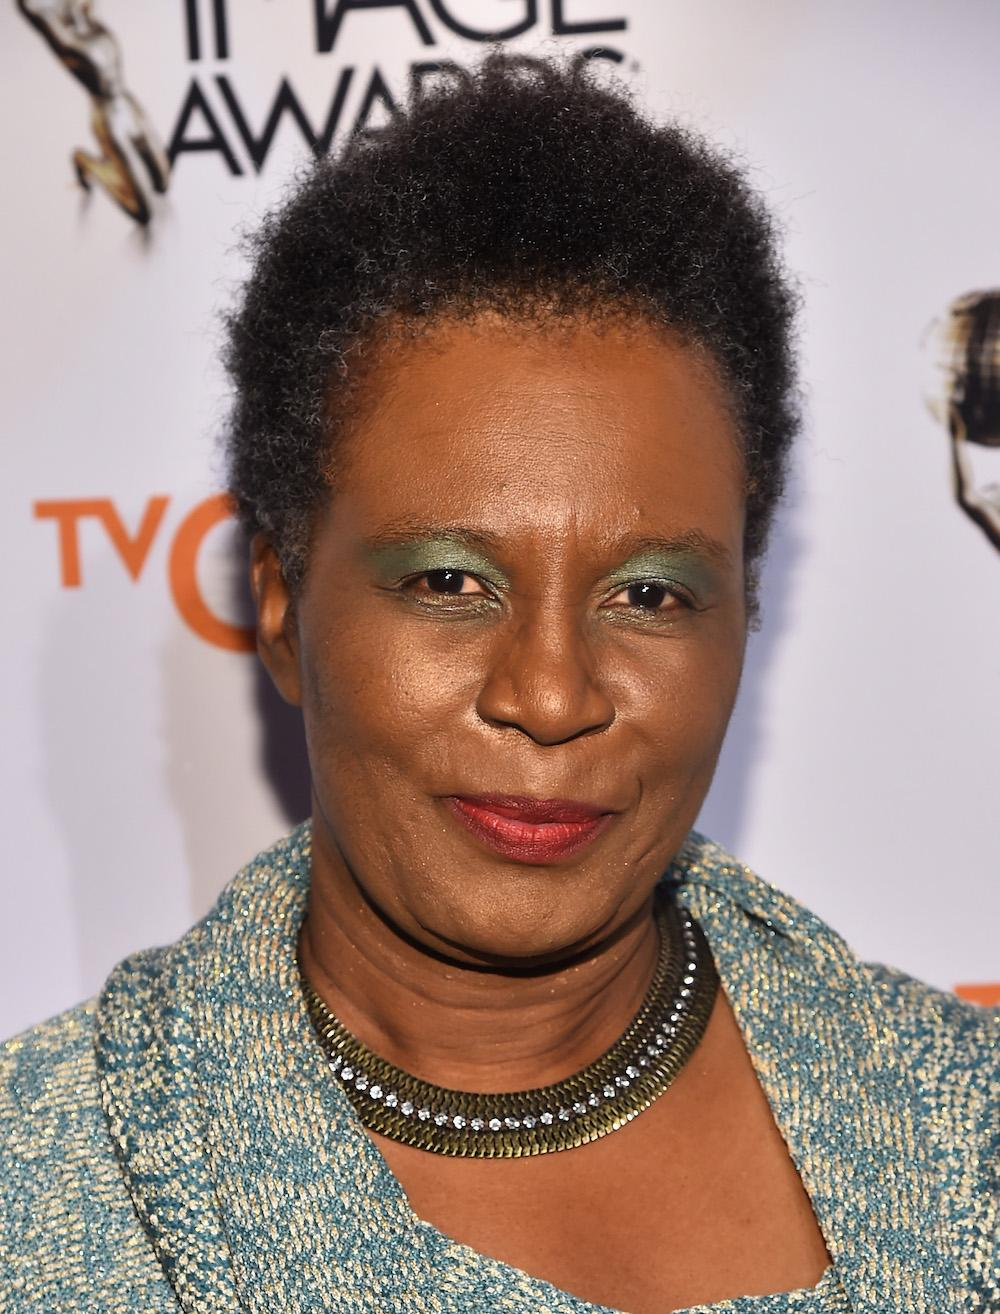 Author Claudia Rankine attends the 46th NAACP Image Awards Non-Televised Awards Ceremony at Pasadena Convention Center on February 5, 2015 in Pasadena, California. (Photo by Alberto E. Rodriguez/Getty Images for NAACP